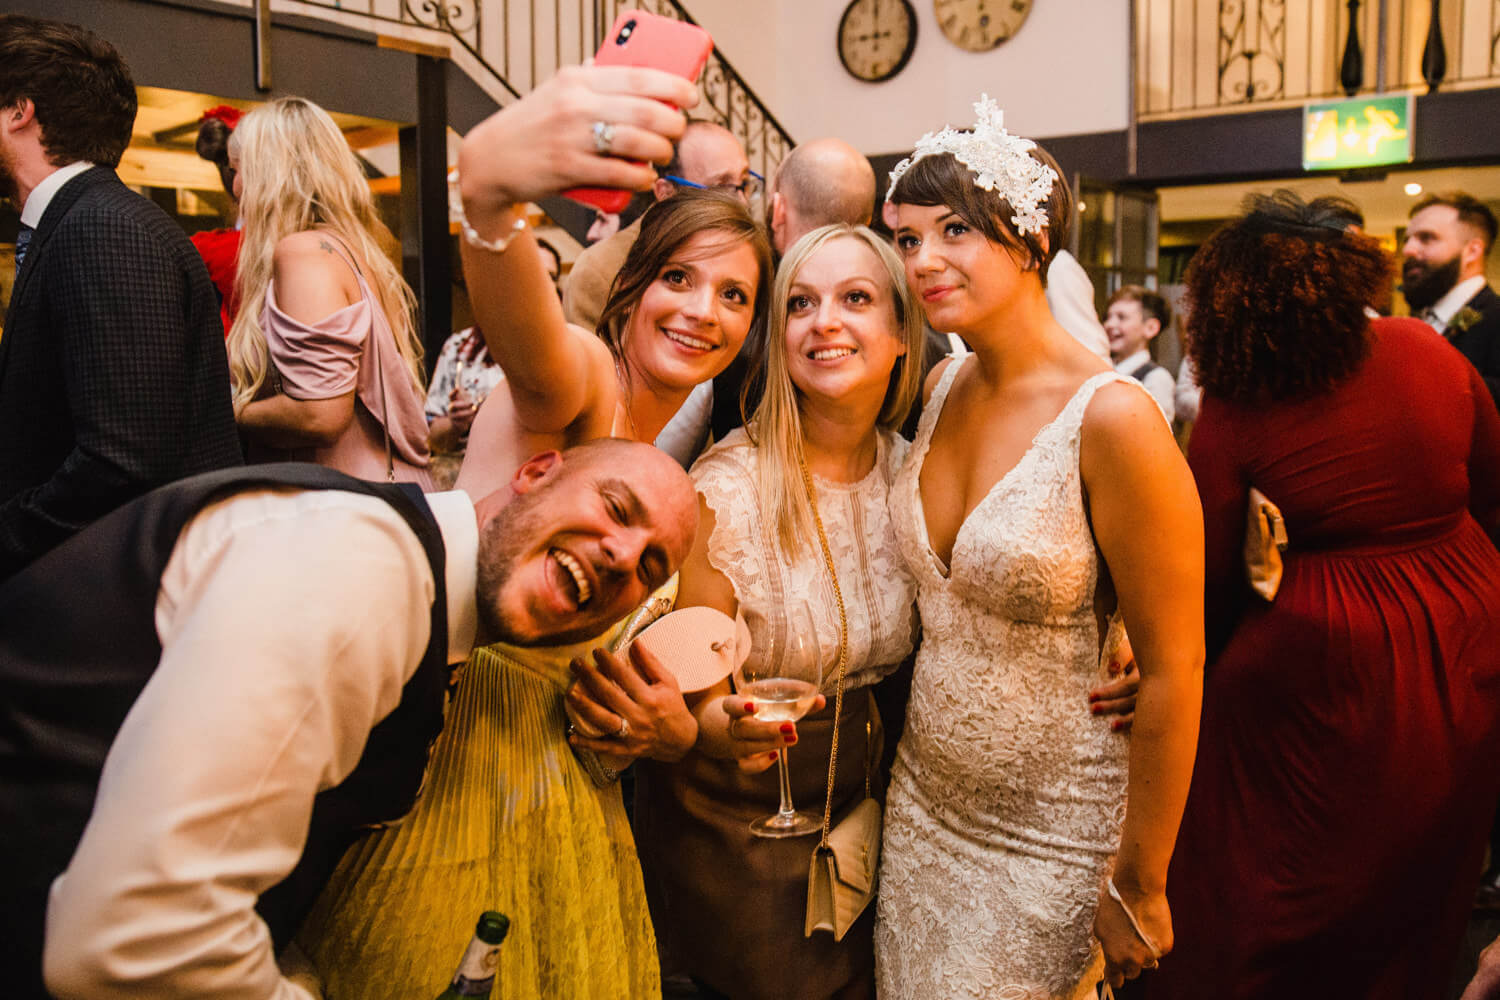 bride and guests enjoying camera phone photograph together on dance floor